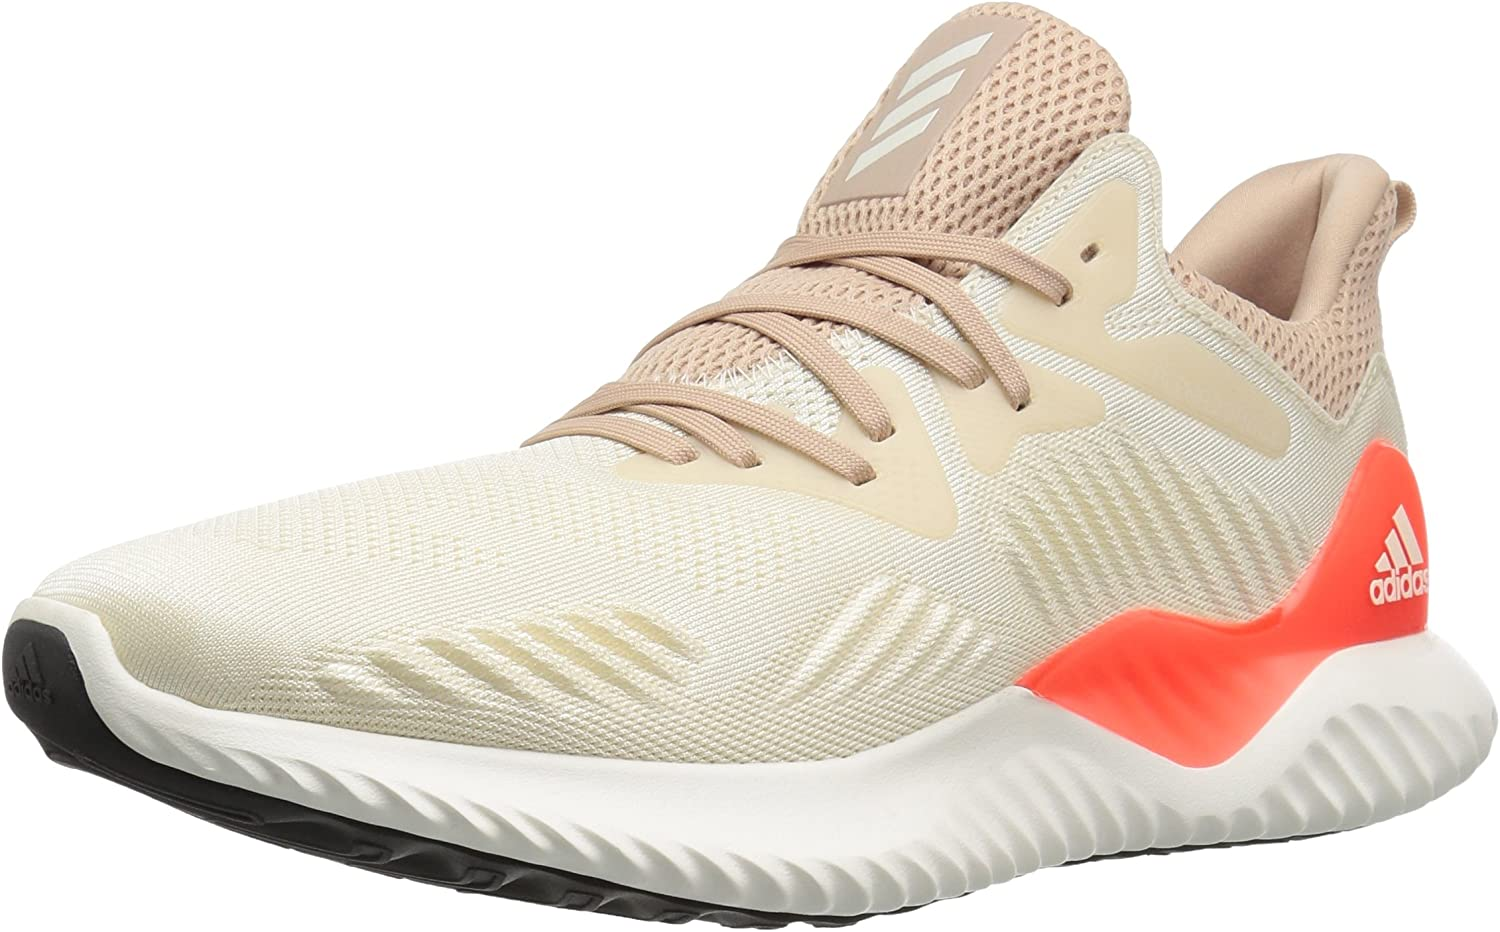 adidas Alphabounce 2 m, Linen Chalk White Ash Pearl, 9 Medium US